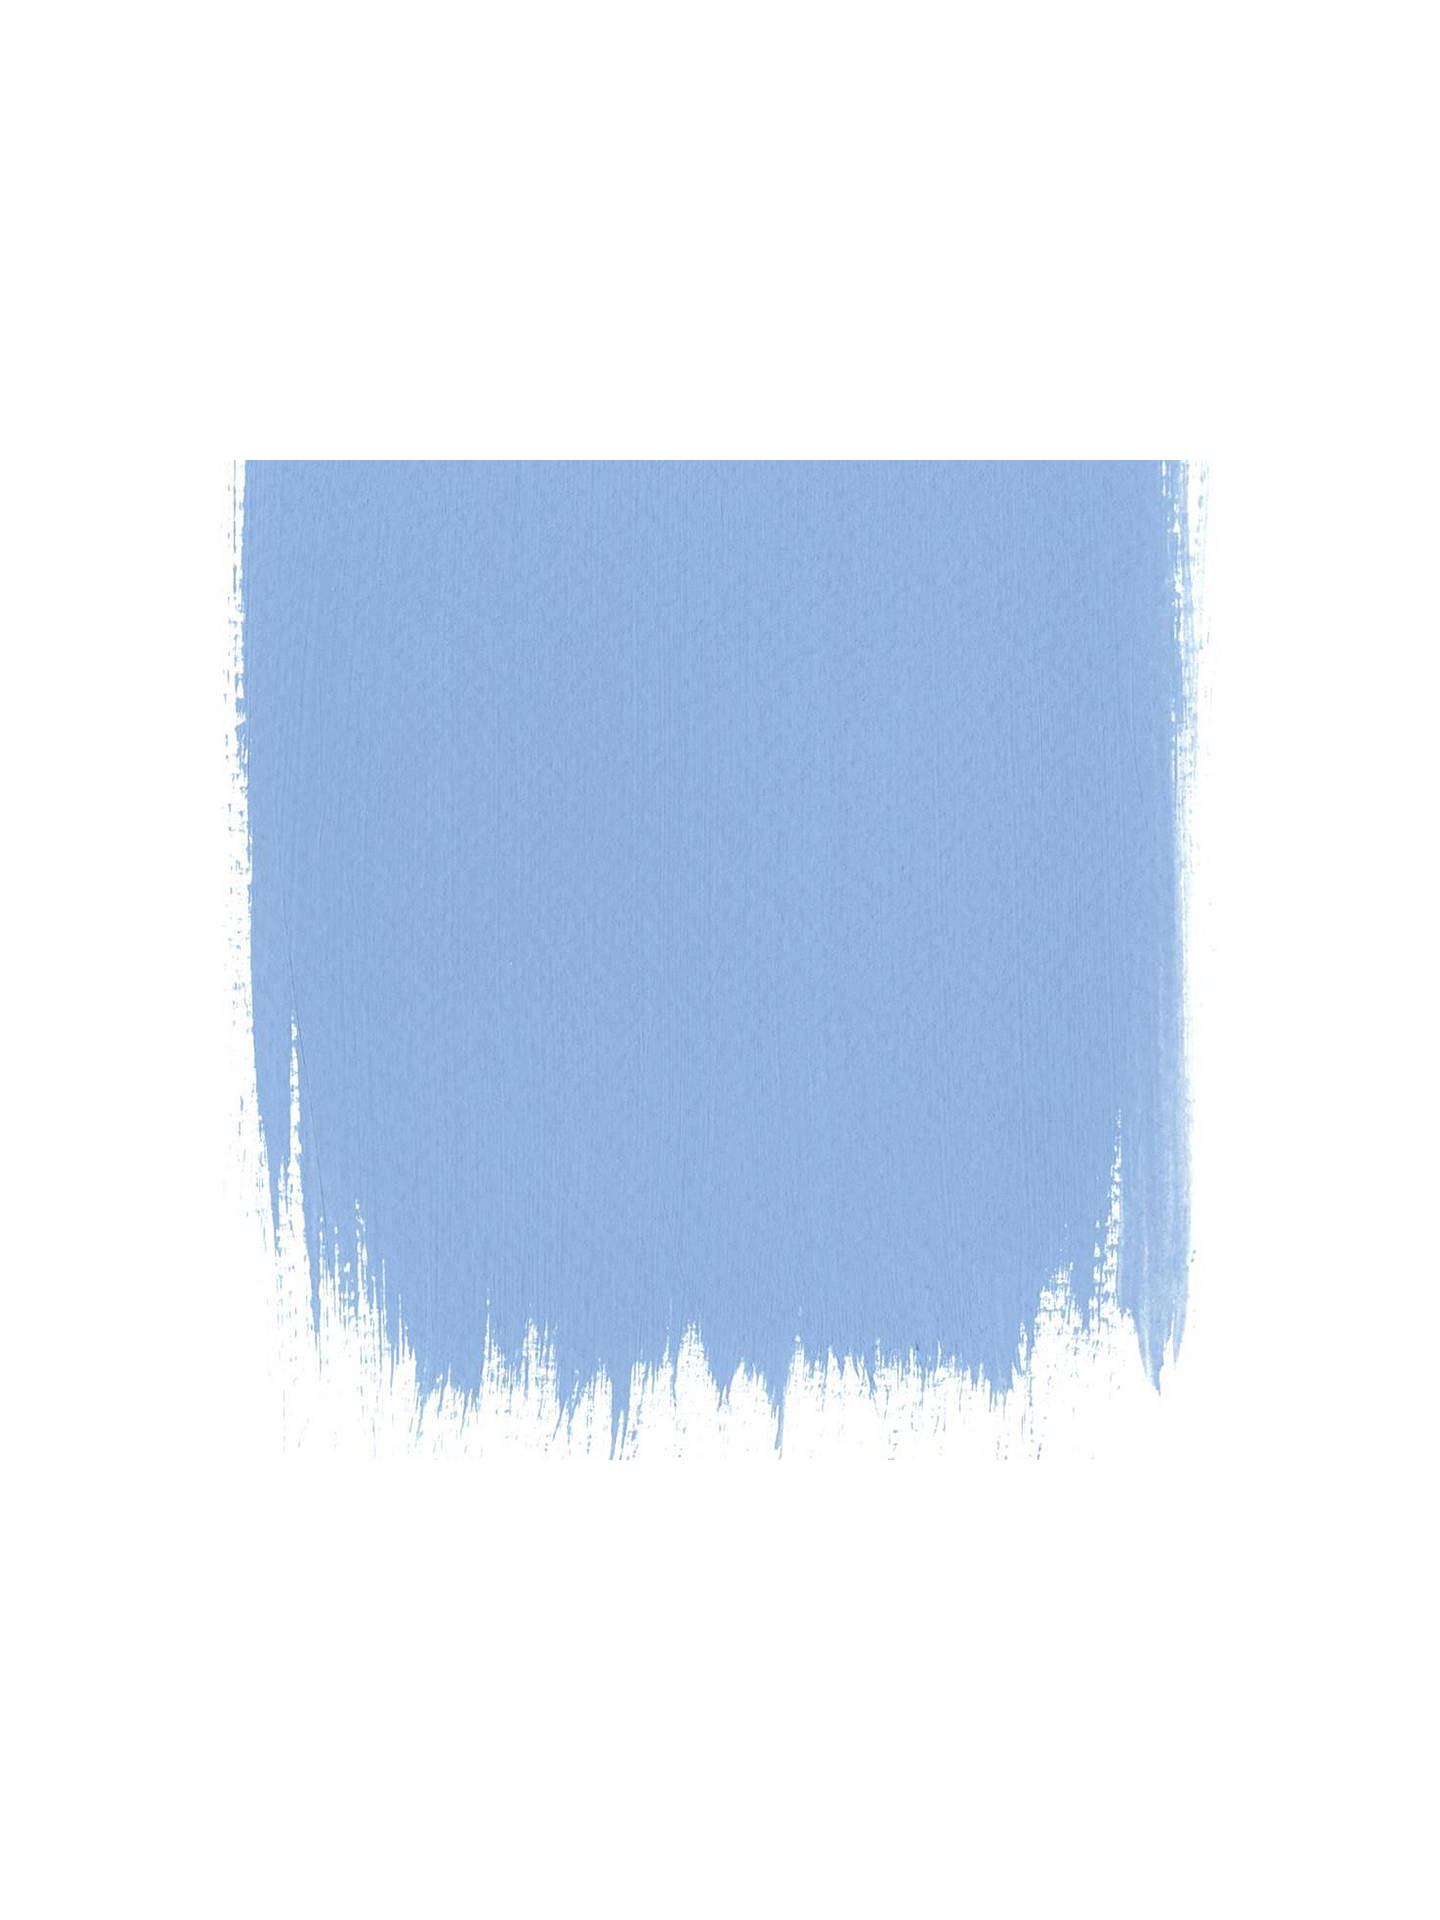 Buy Designers Guild Water Based Eggshell 1L, Mid Blues, Jodphur Palace (56) Online at johnlewis.com